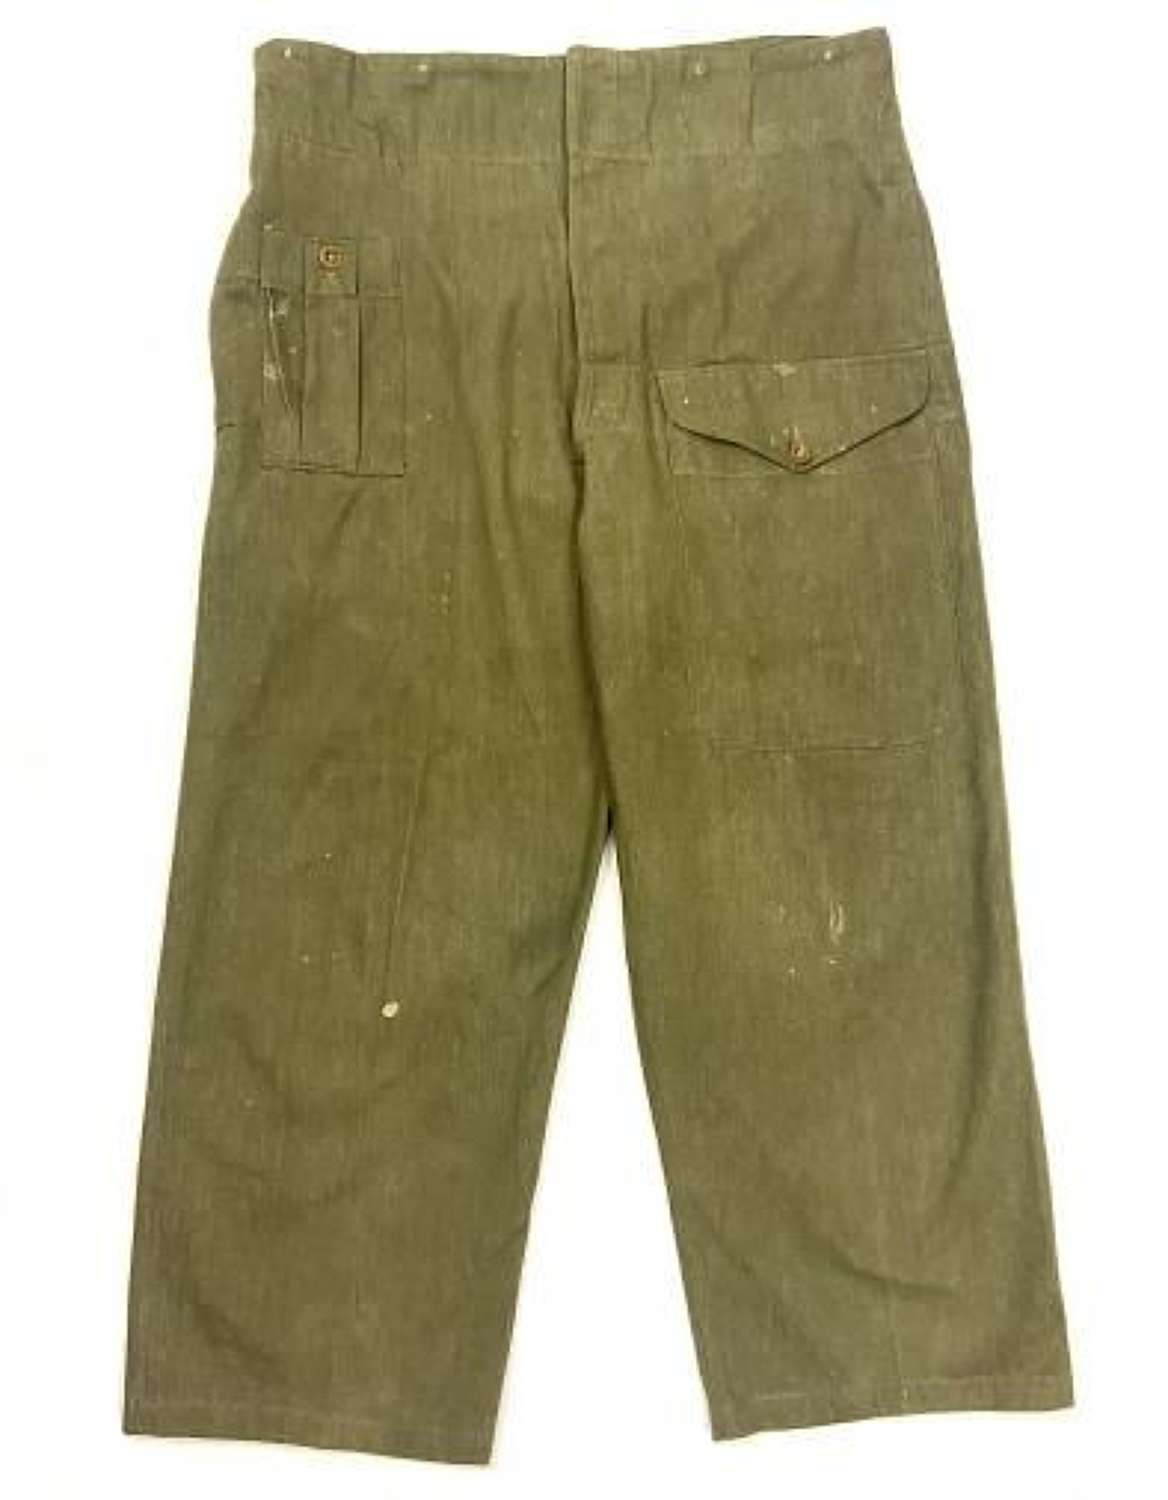 Original 1955 Dated British Army Denim Battledress Trousers